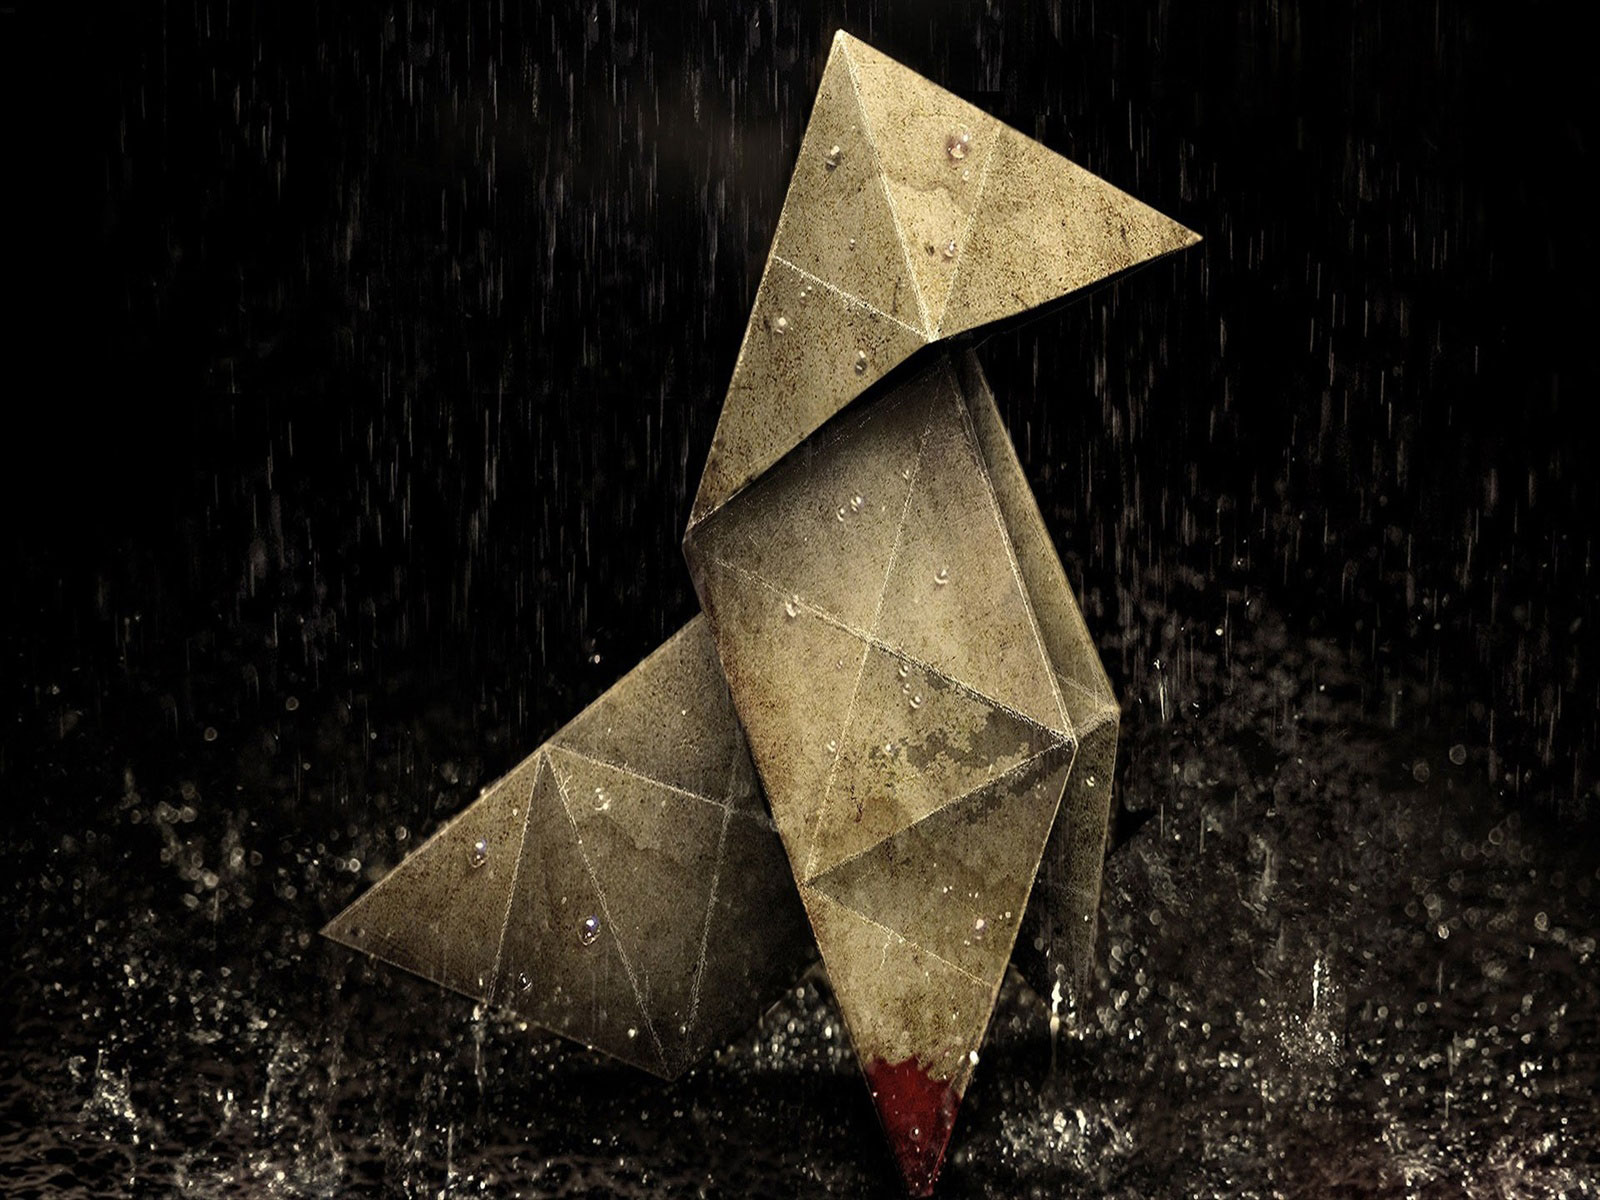 Origami Heavy Rain wallpaper